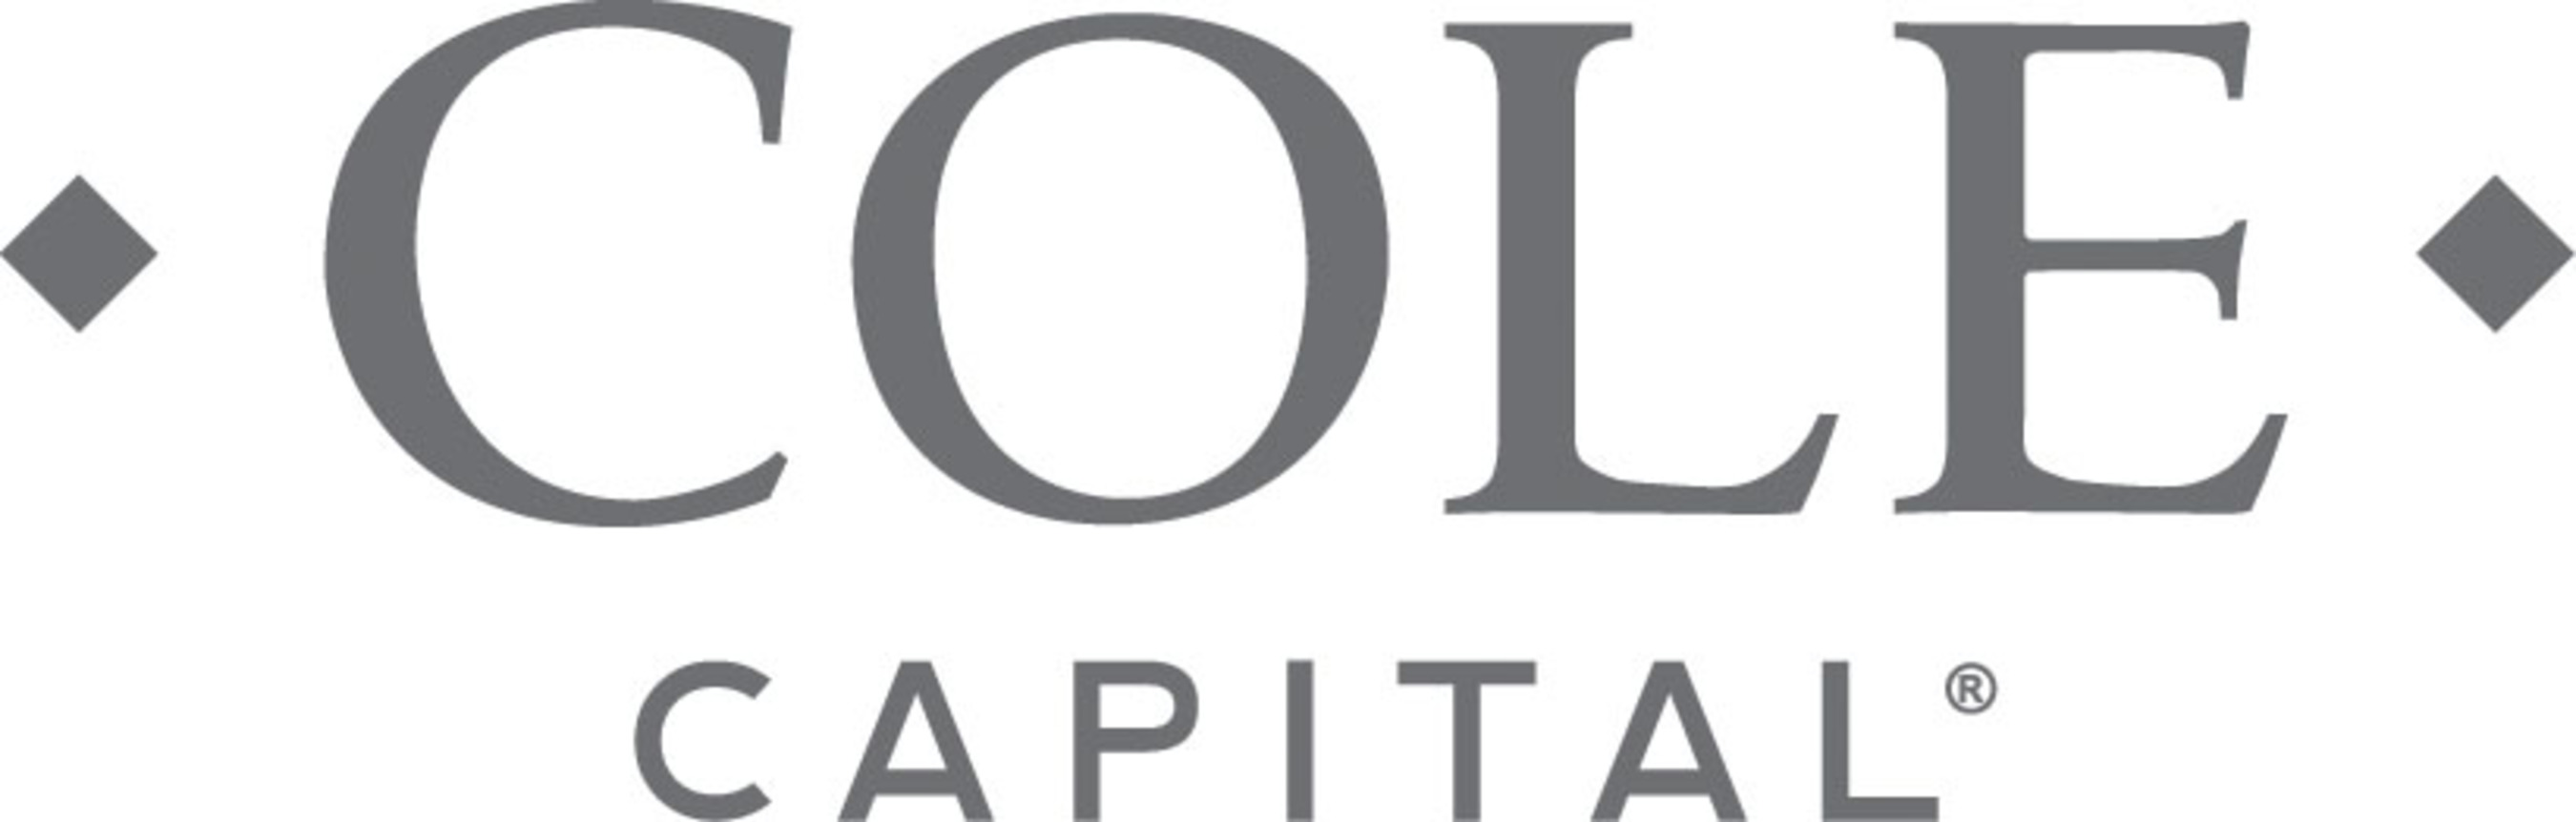 Cole Capital is the investment management business of VEREIT, Inc. As an industry leading non-listed REIT sponsor, Cole Capital creates innovative net lease real estate products that serve individual investors and financial professionals. (PRNewsFoto/Cole Capital)